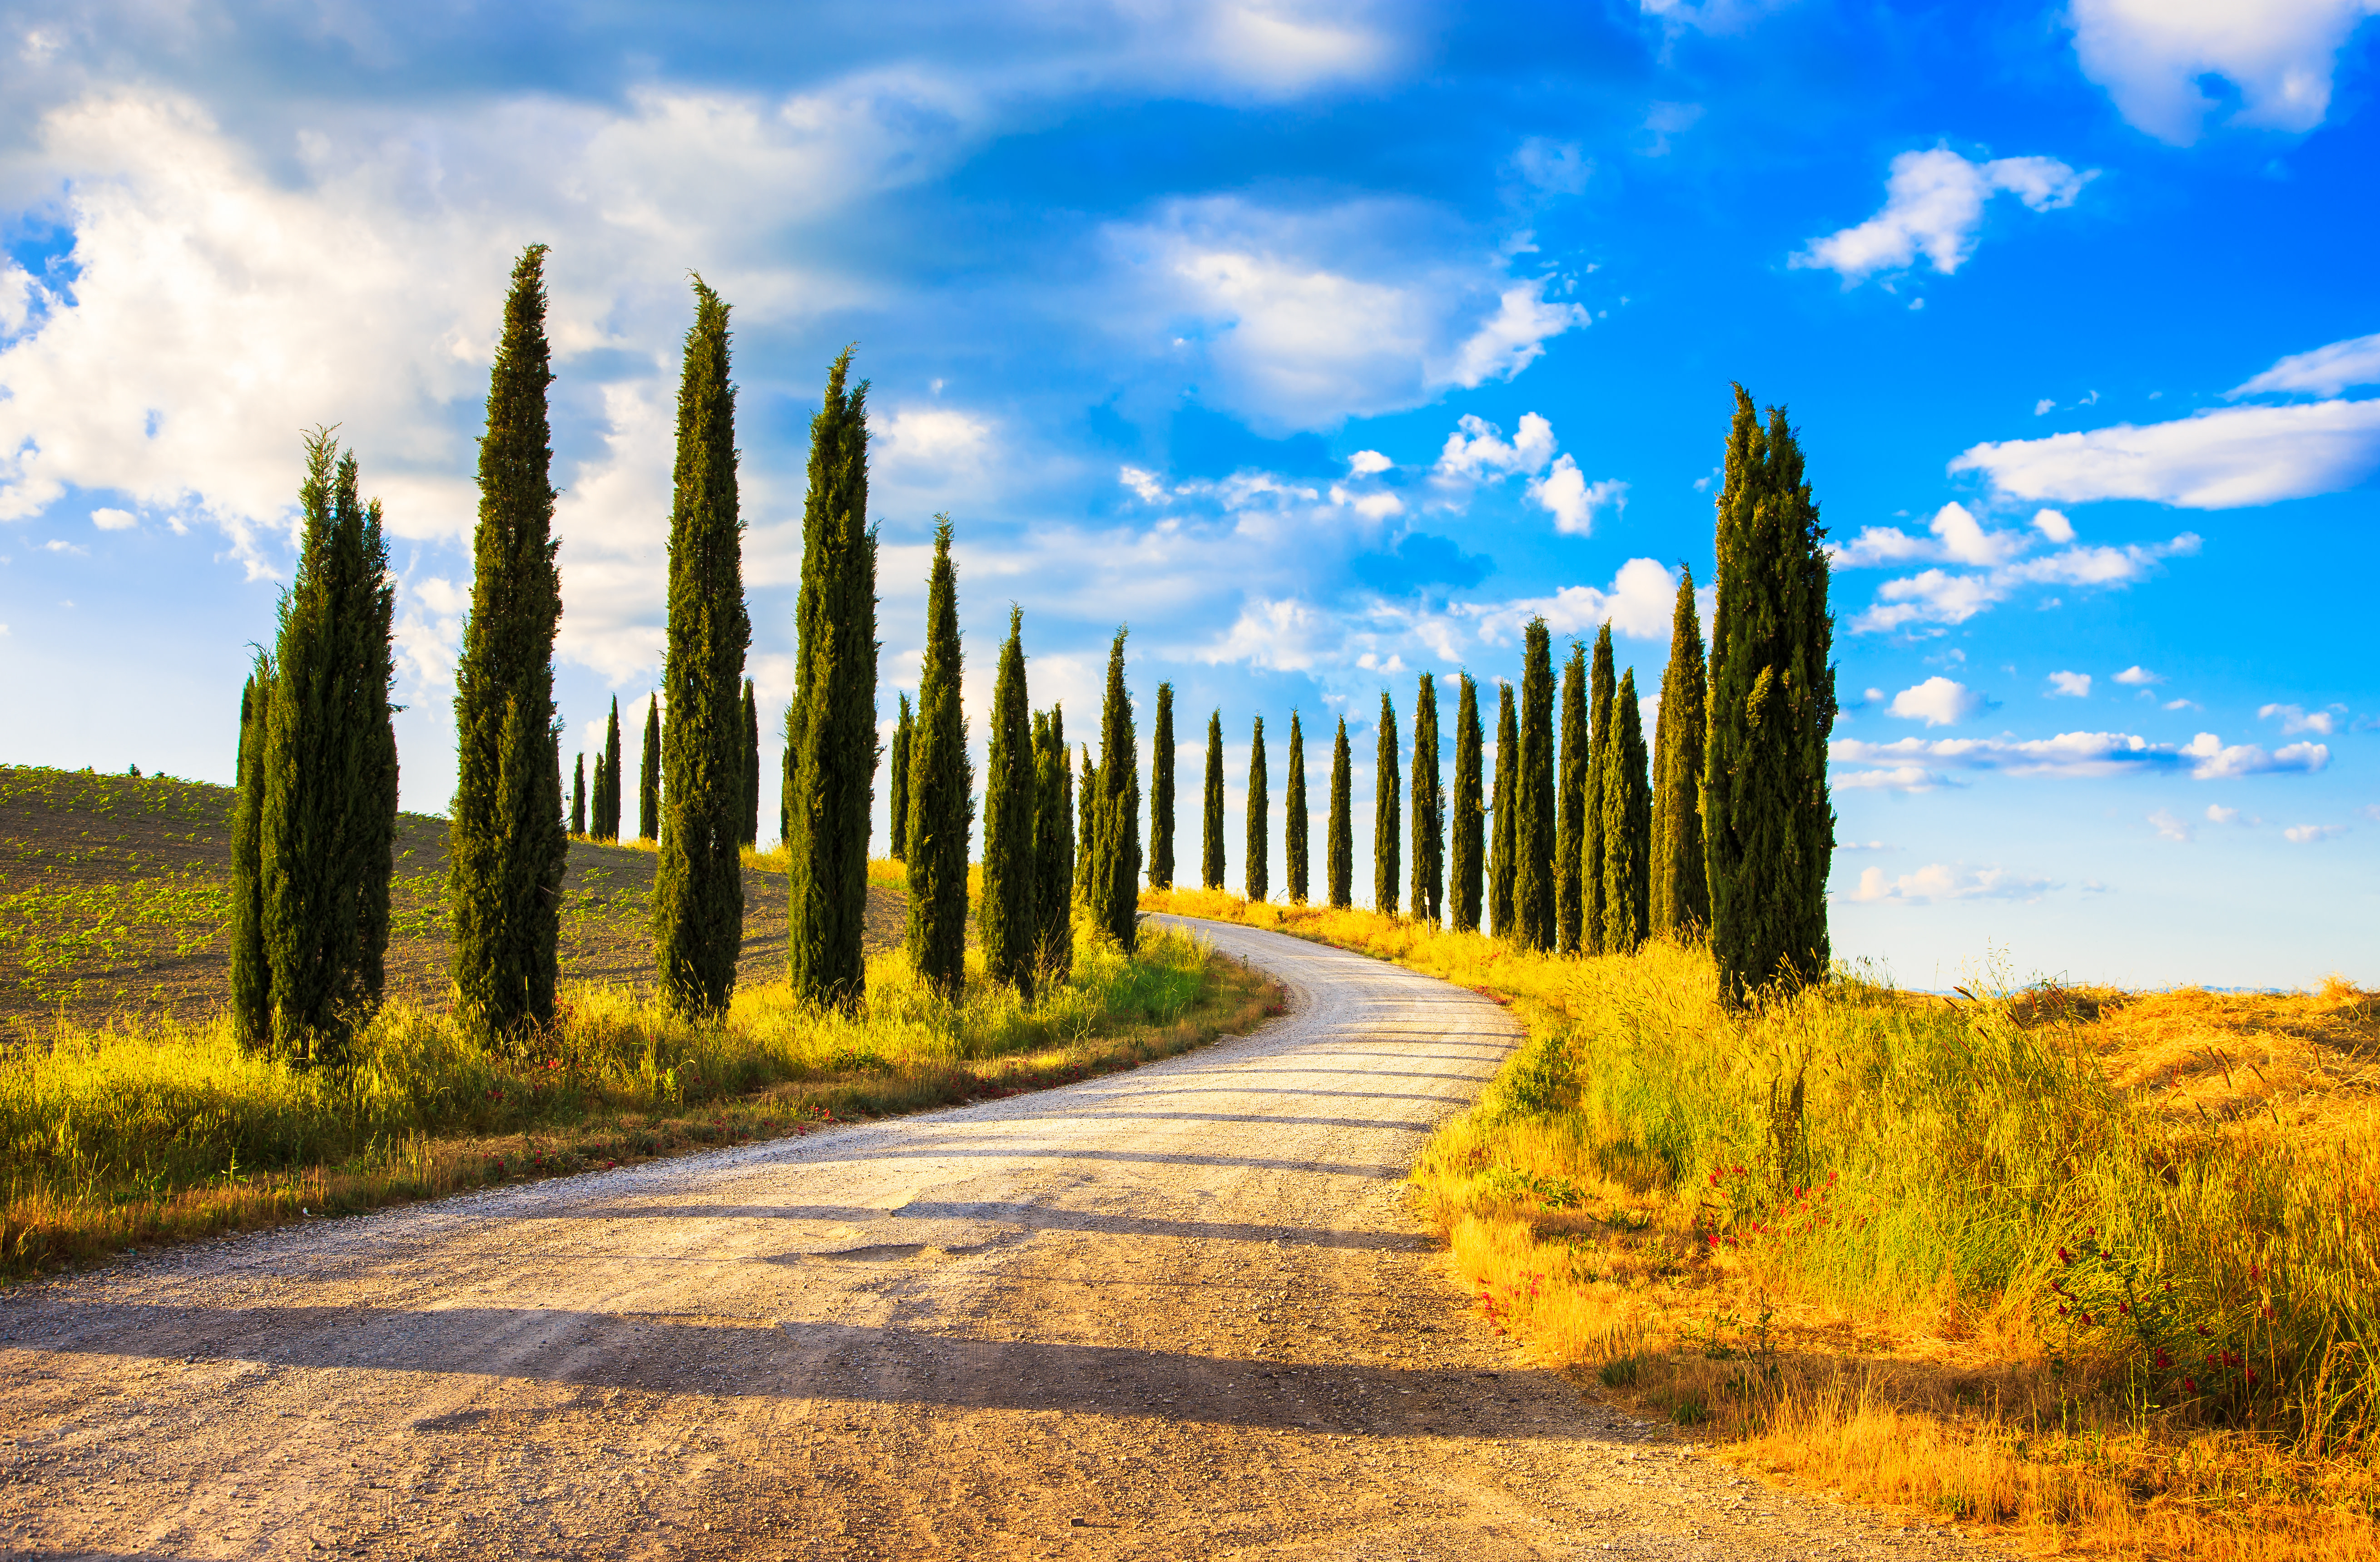 Italy travel guide - Tuscany